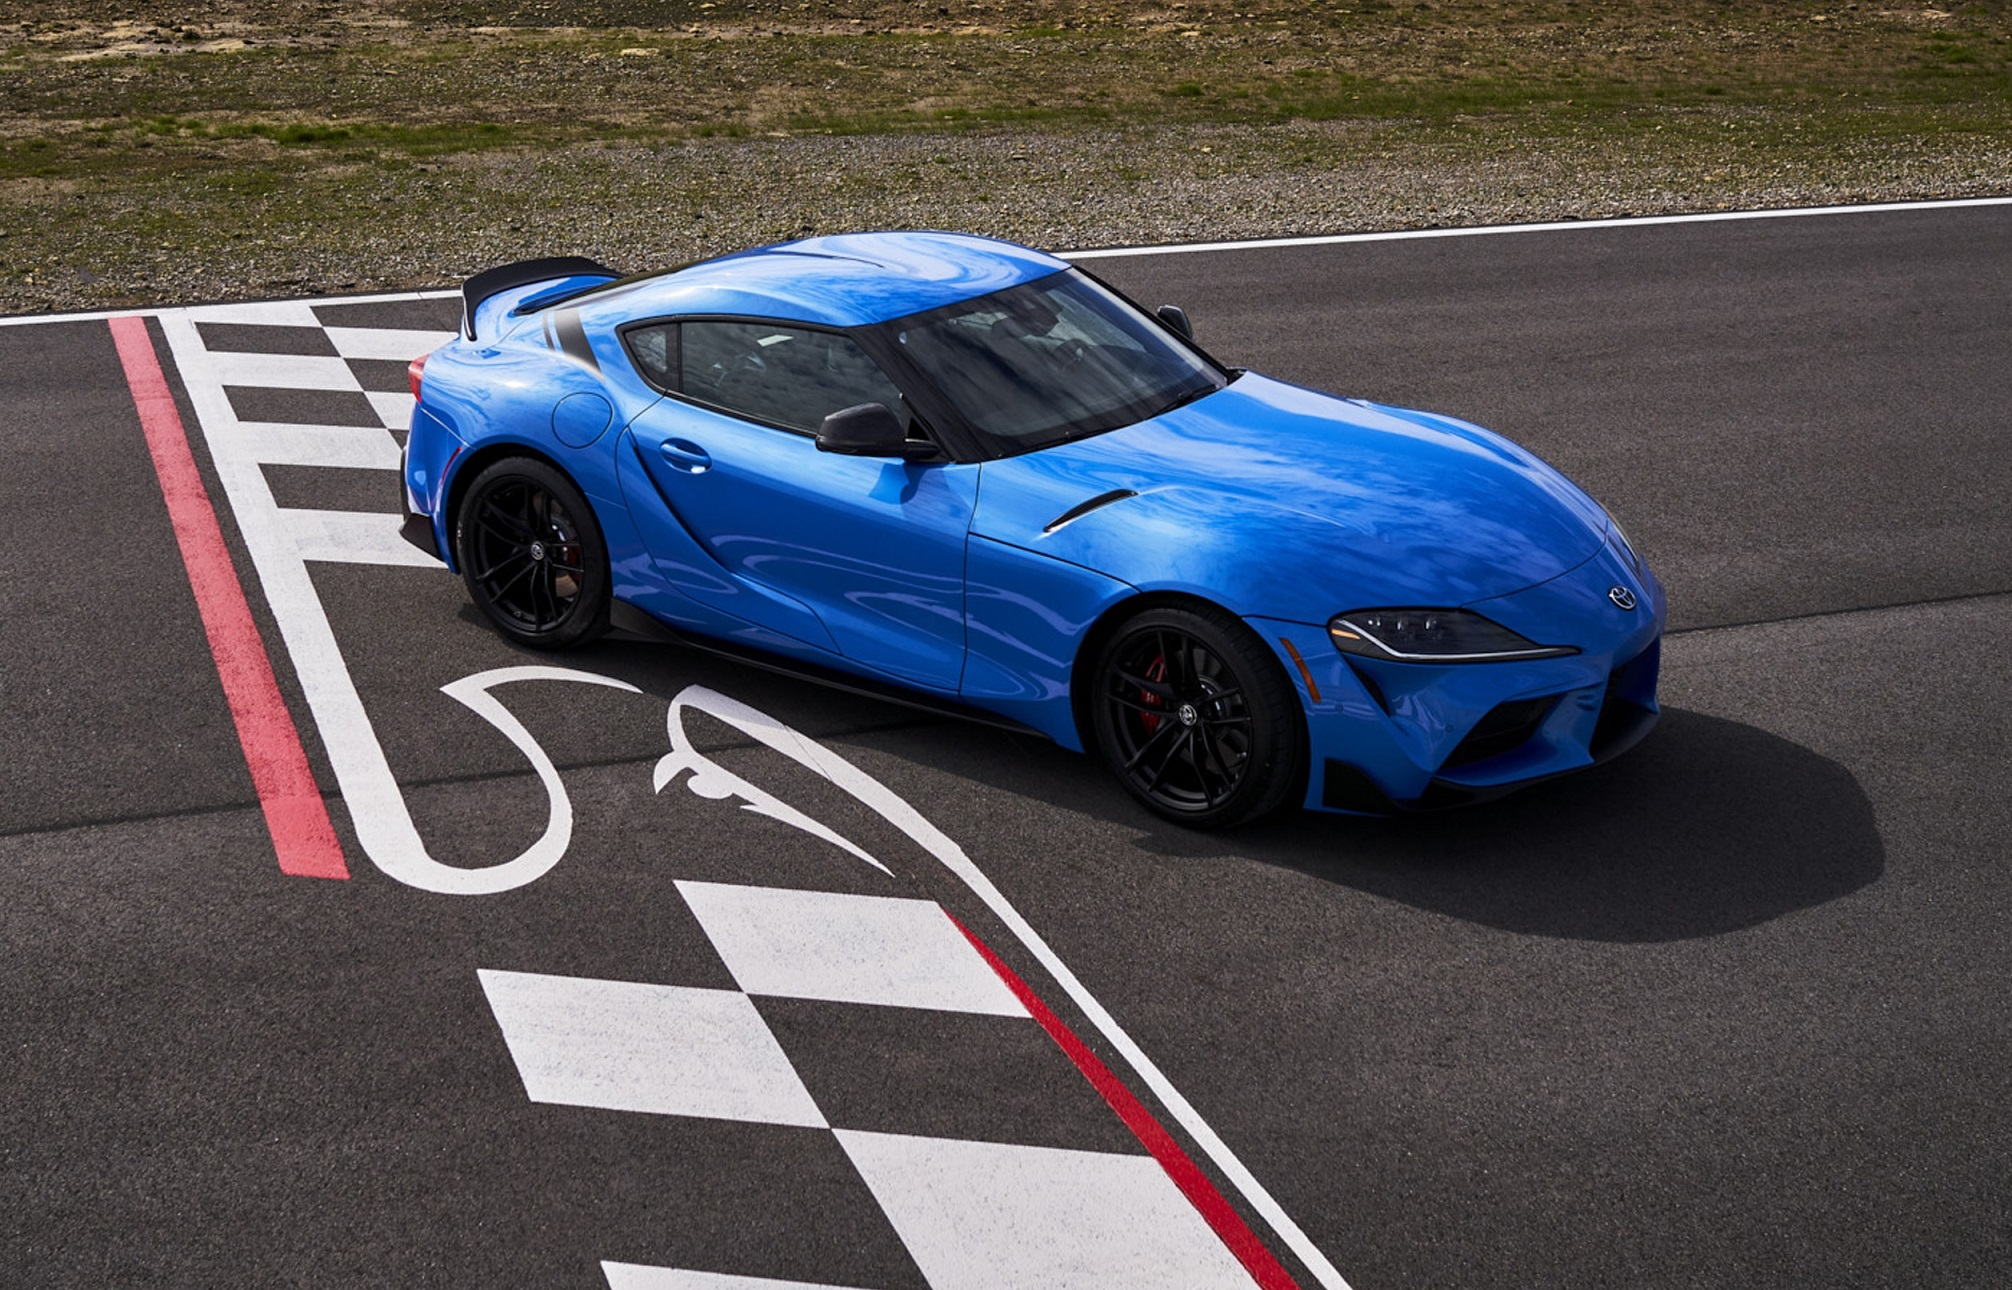 toyota gr supra races into 2021 with more power and first